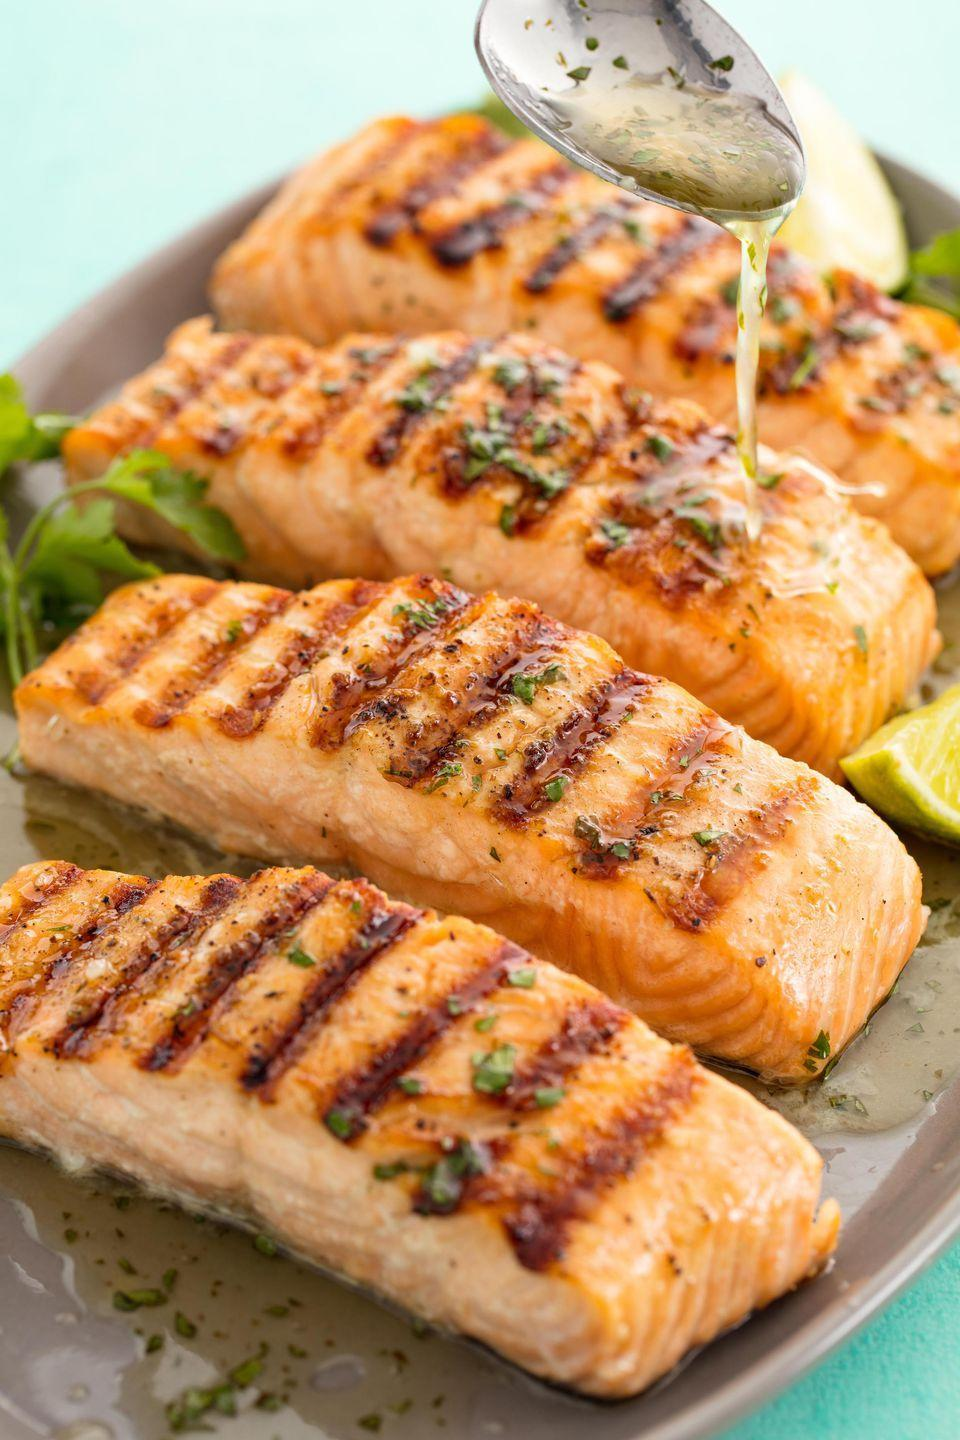 """<p>Dust off the grill.</p><p>Get the recipe from <a rel=""""nofollow noopener"""" href=""""https://www.delish.com/cooking/recipe-ideas/recipes/a58718/best-grilled-salmon-fillets-recipe/"""" target=""""_blank"""" data-ylk=""""slk:Delish"""" class=""""link rapid-noclick-resp"""">Delish</a>.</p><p><a rel=""""nofollow noopener"""" href=""""https://www.amazon.com/Artisanal-Kitchen-Supply-Serving-Platter/dp/B074WKXX2J/"""" target=""""_blank"""" data-ylk=""""slk:BUY NOW"""" class=""""link rapid-noclick-resp"""">BUY NOW</a> <strong><em>Grey Serving Platter, $39; amazon.com.</em></strong></p>"""